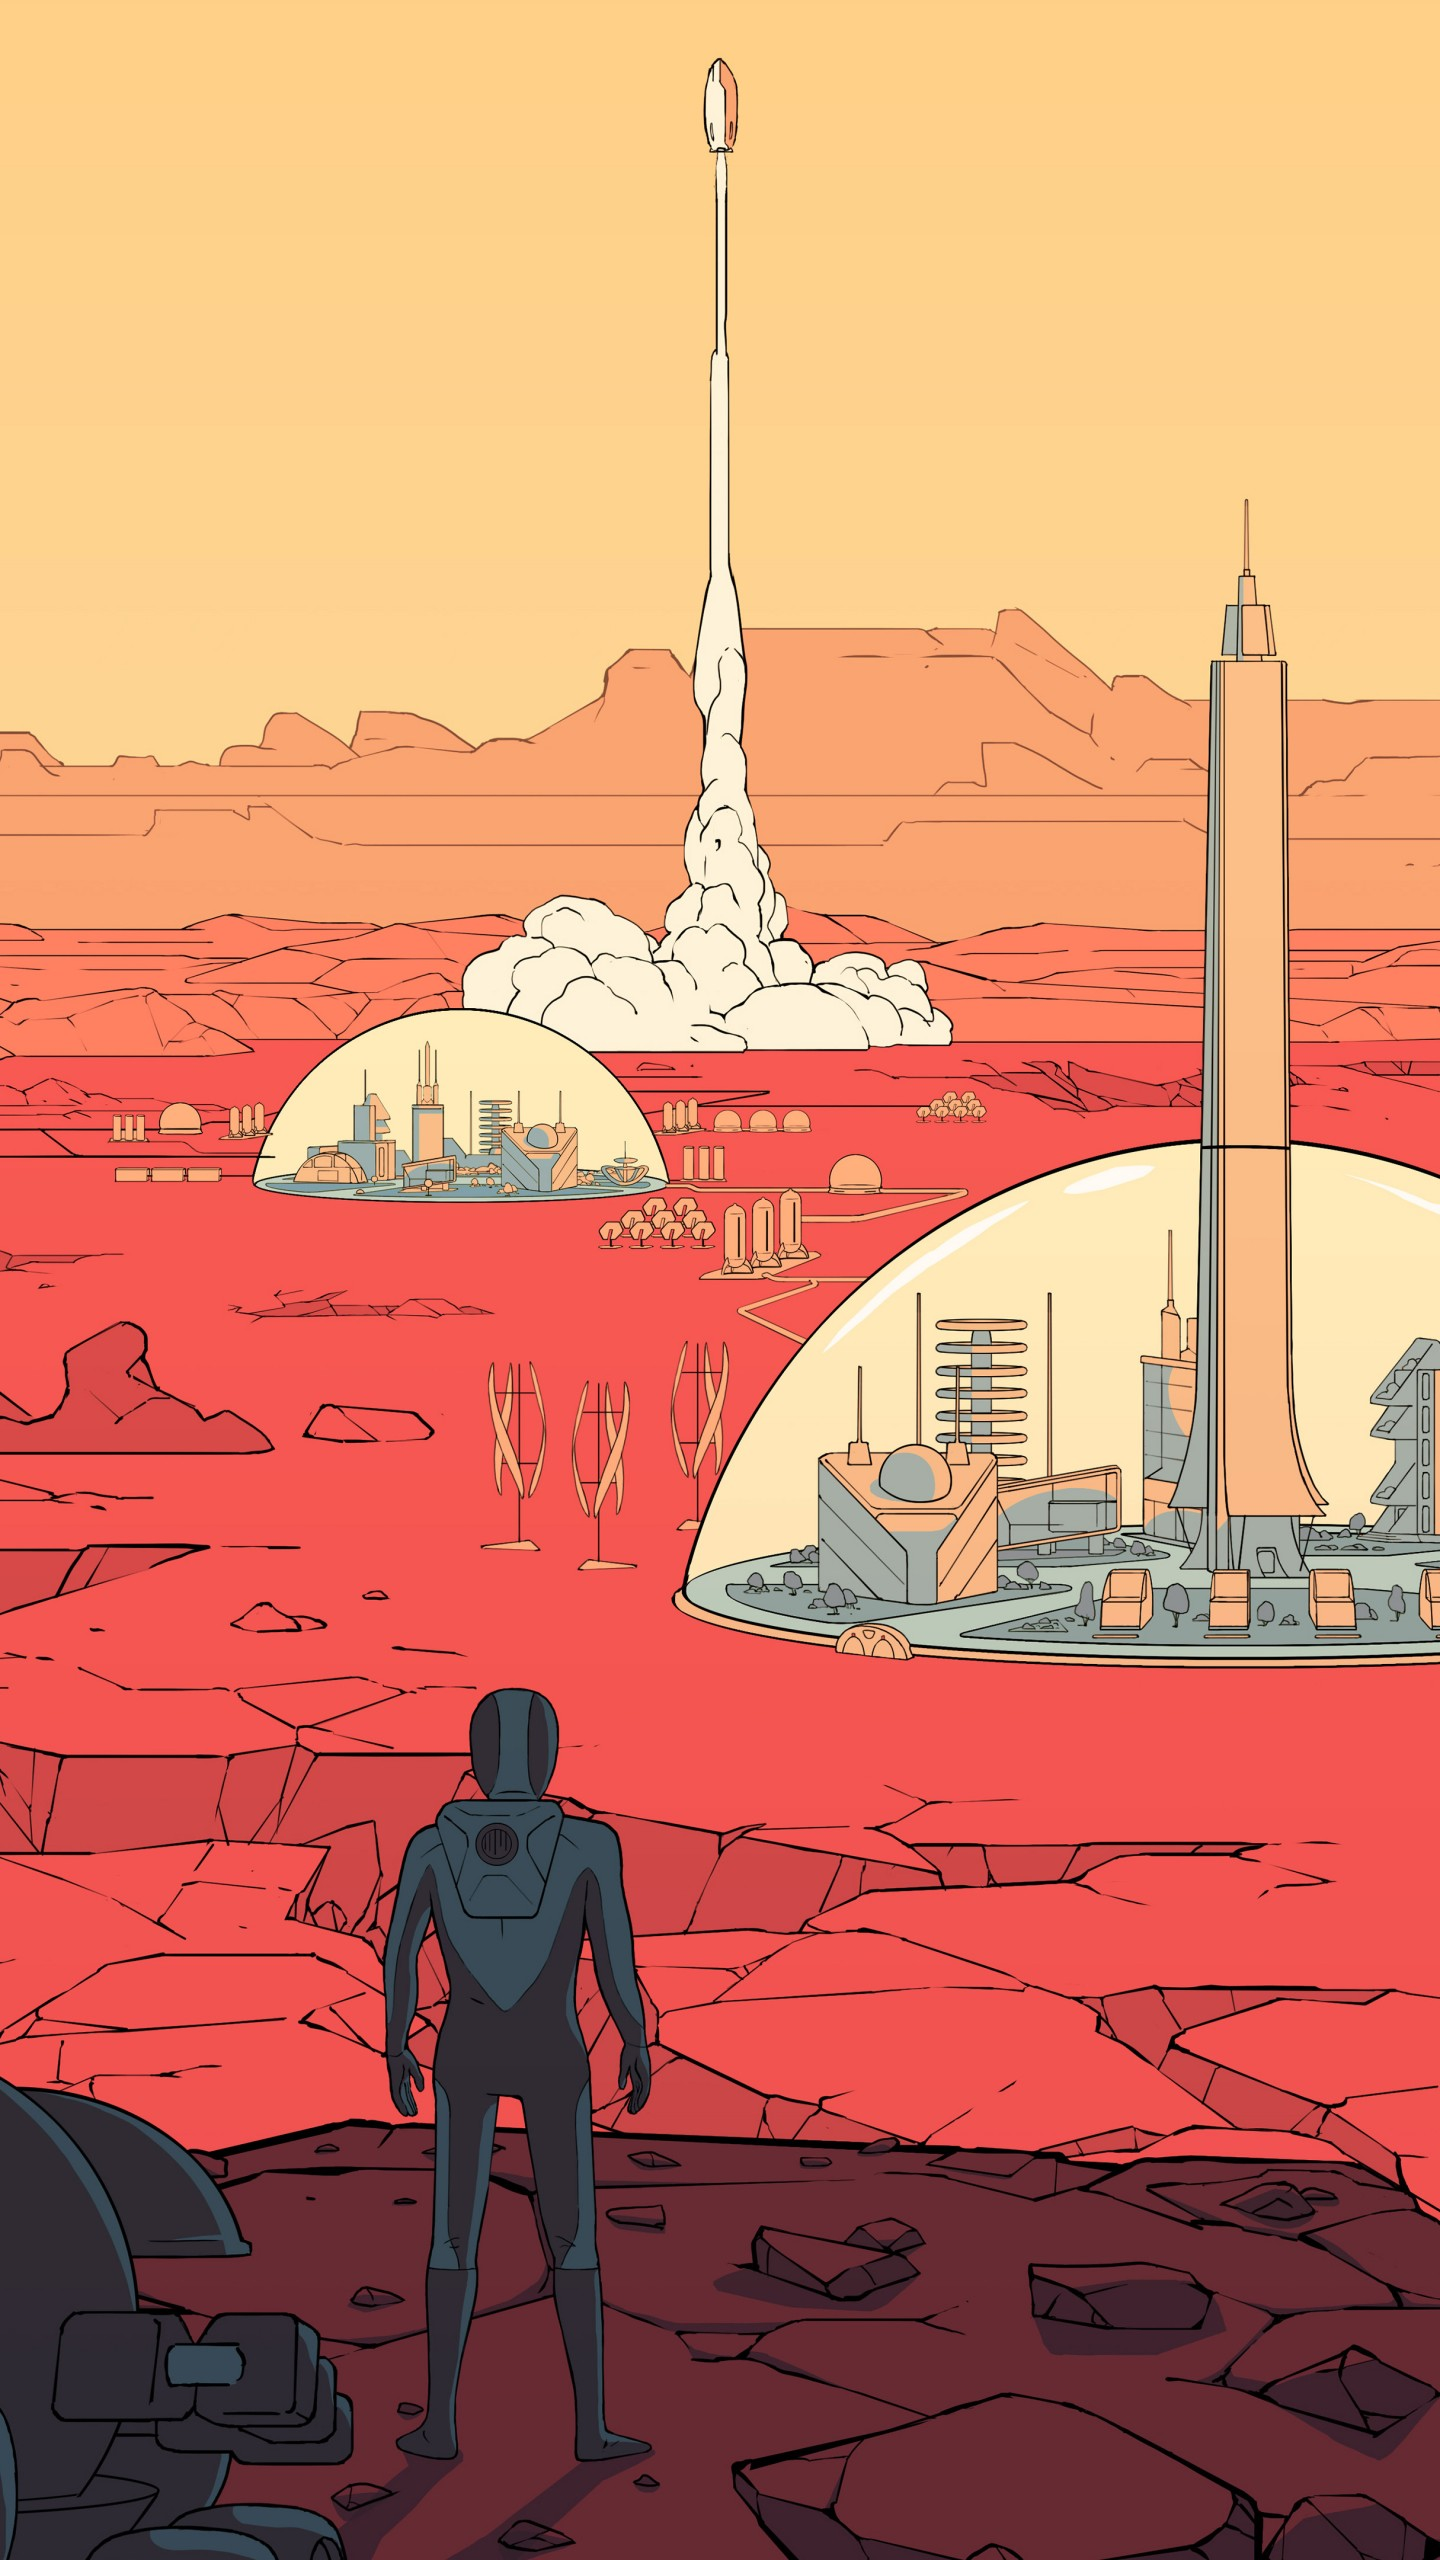 720x1280 Hd Wallpapers Quotes Wallpaper Surviving Mars Poster 8k Games 17774